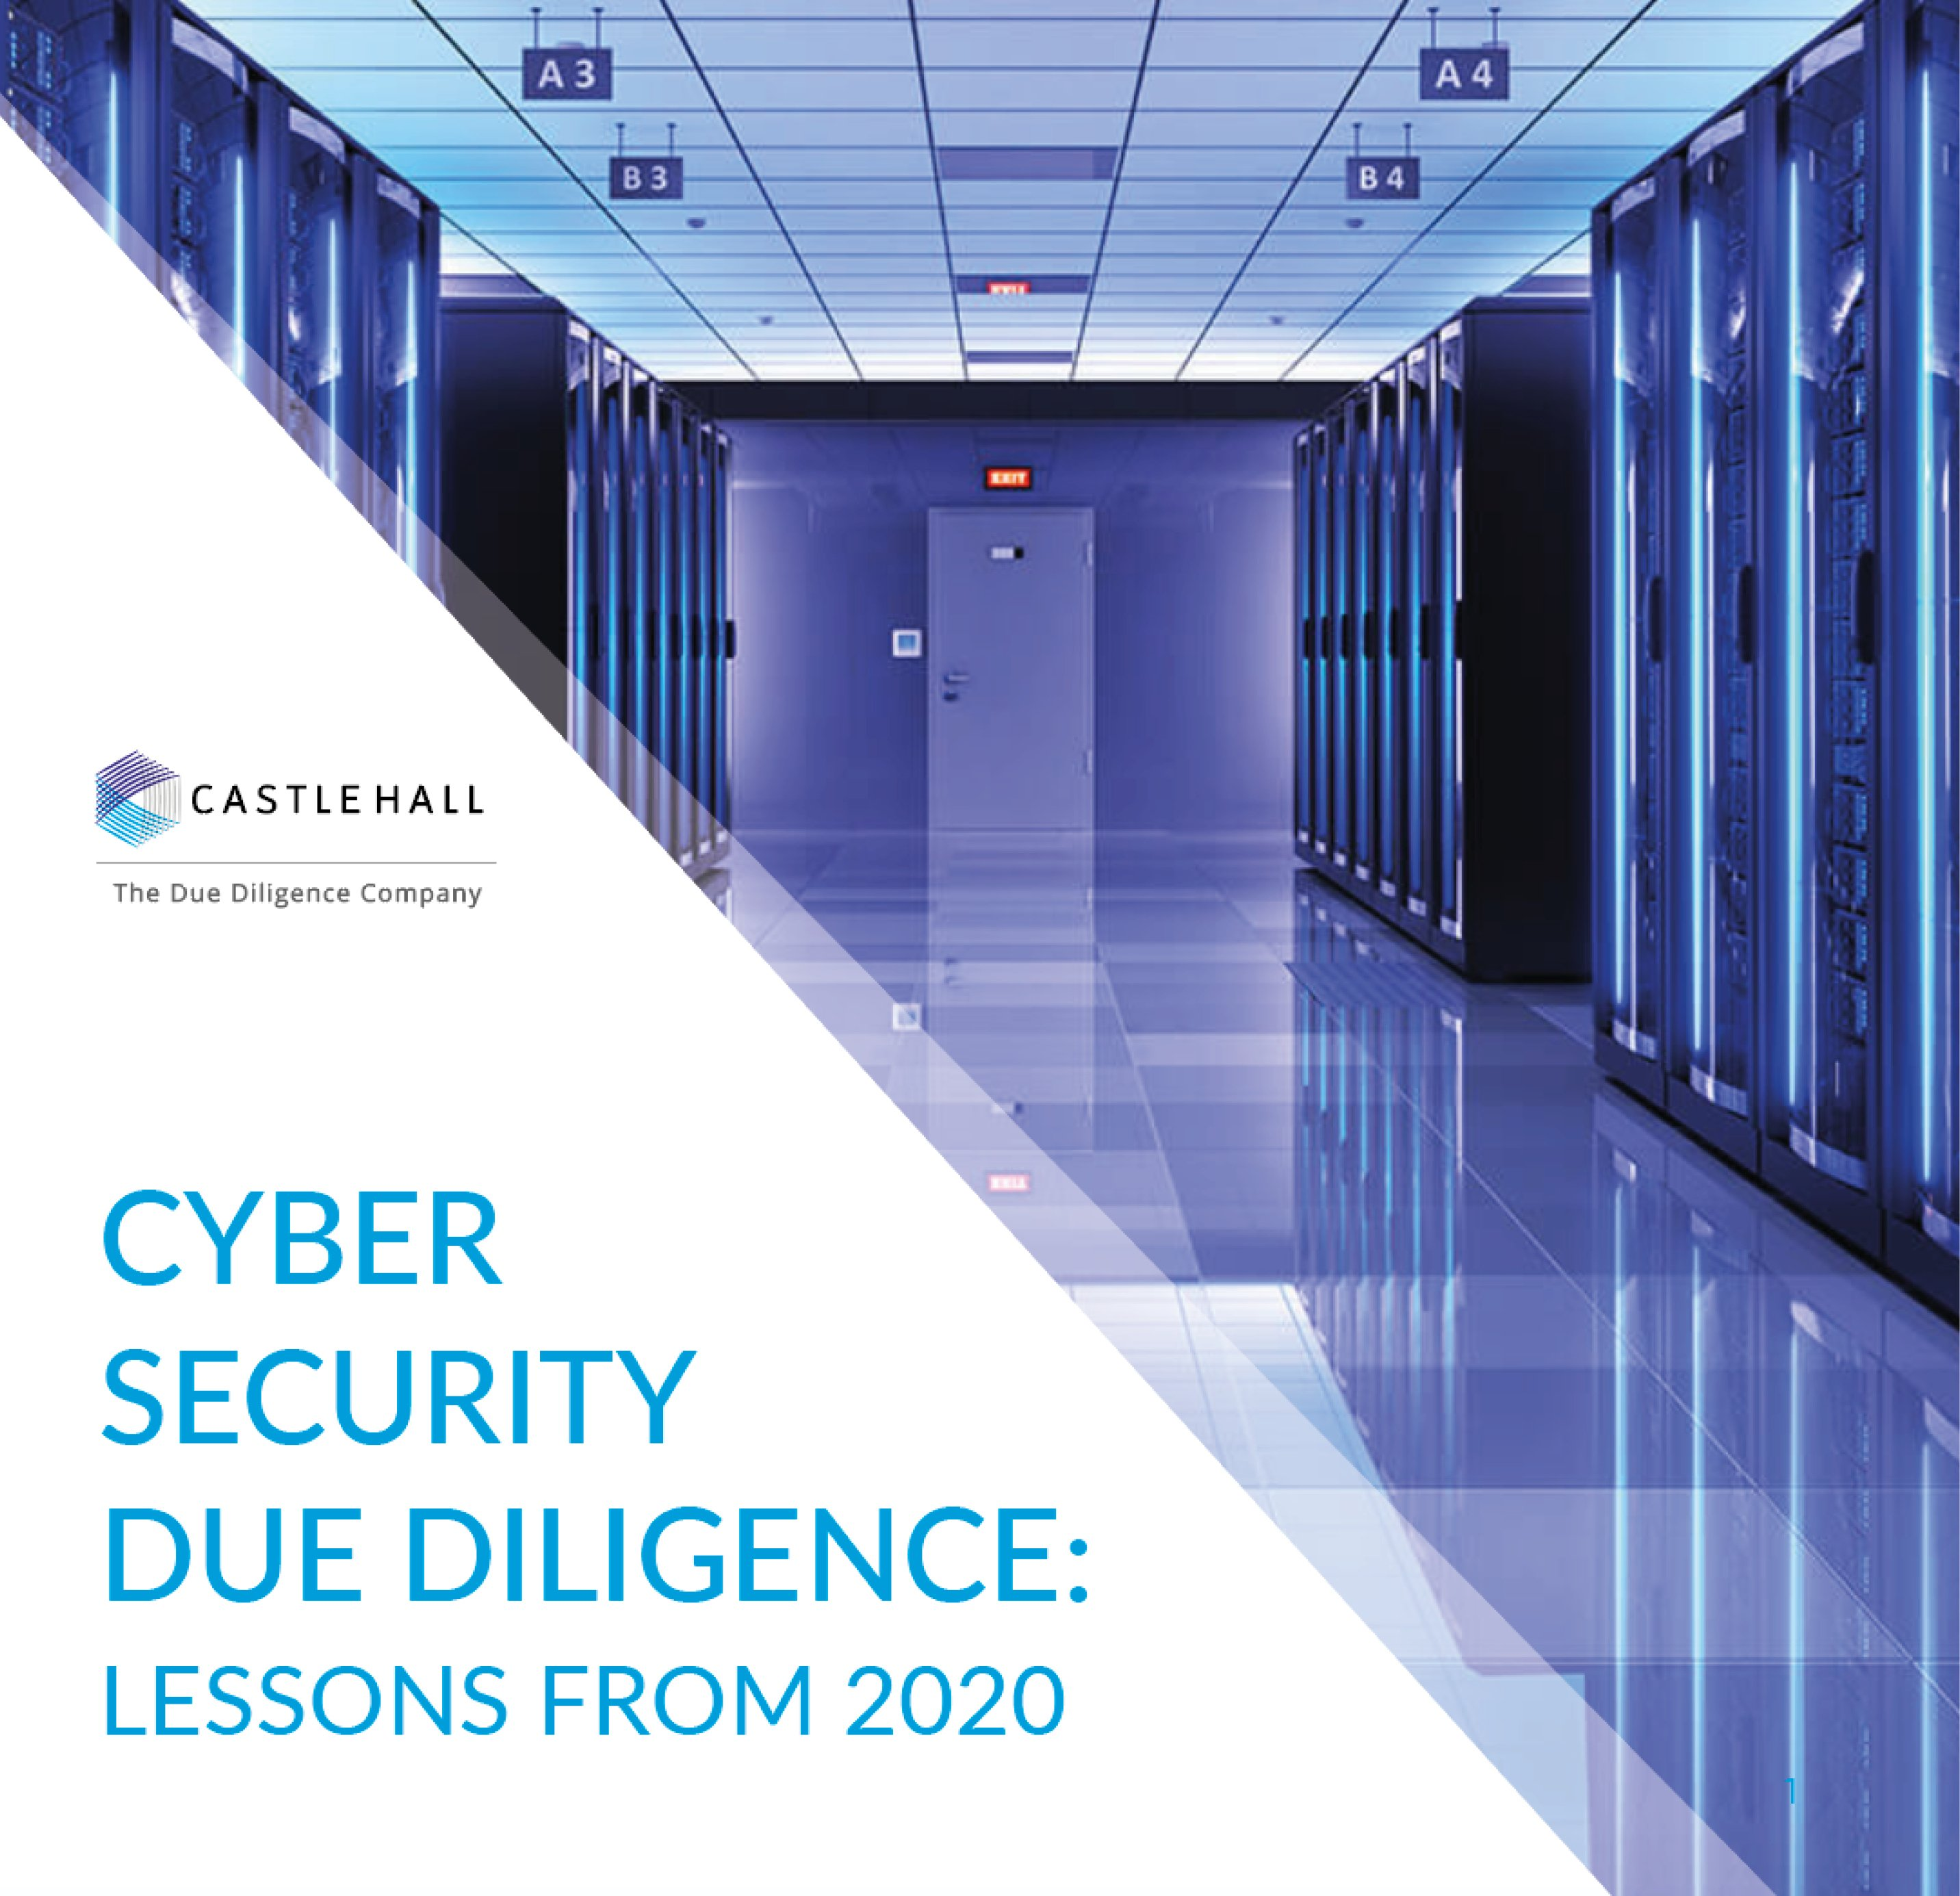 cyber lessons 2020-1